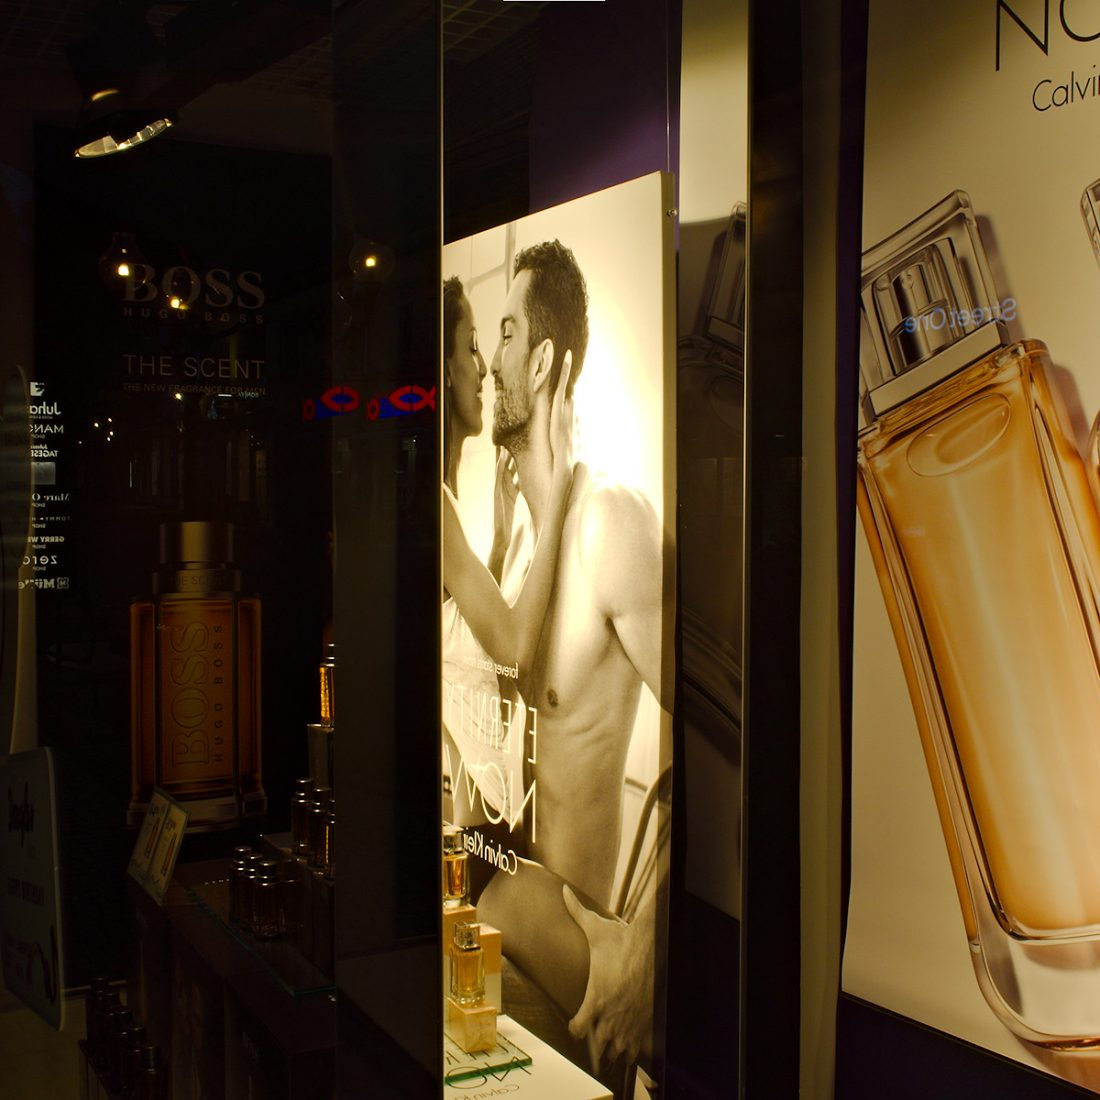 THE SCENT: Blog, Urban, advertisement, illusions, reflection